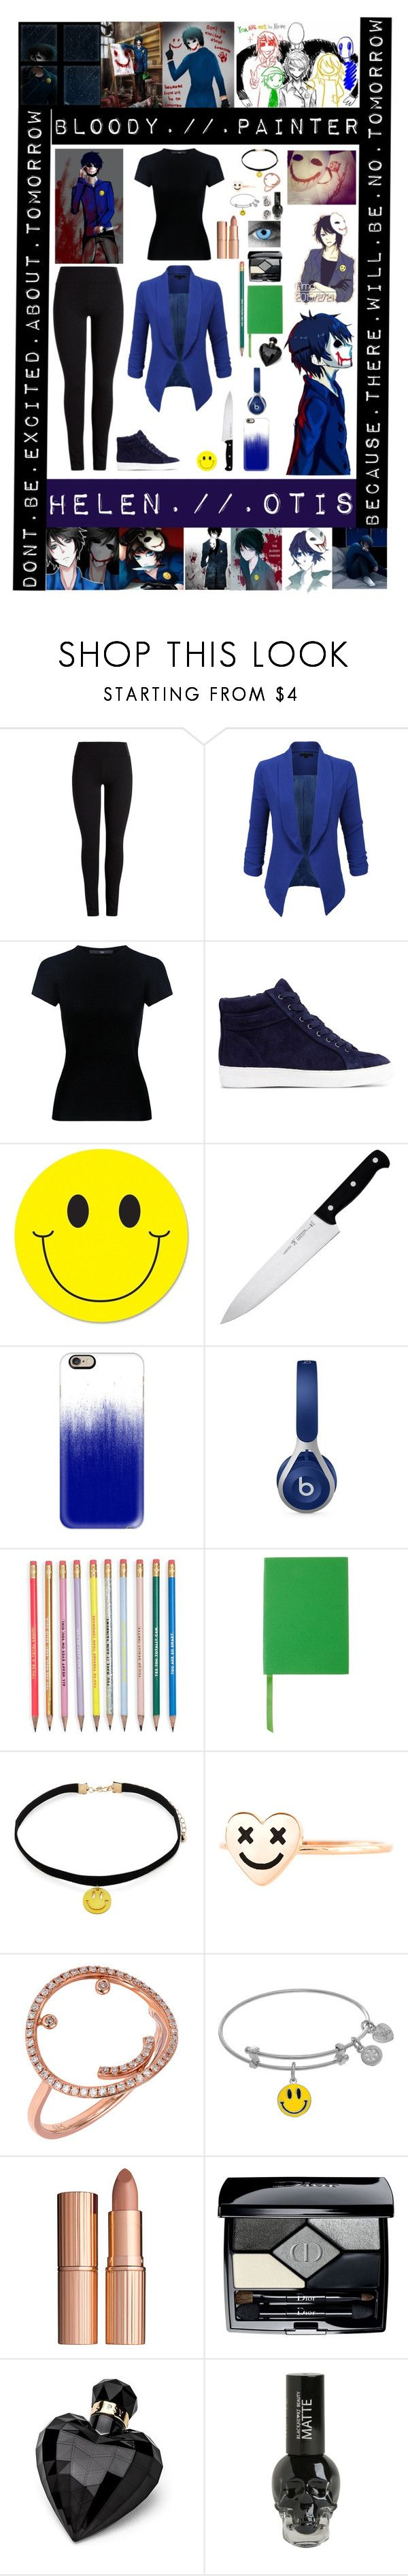 """1e5010e4f3c29cec9c0af1e8bc7a4da1  bloody painter painters - """"Bloody Painter"""" by laughingjacksdaughter ❤ liked on Polyvore featuring LE3NO,..."""